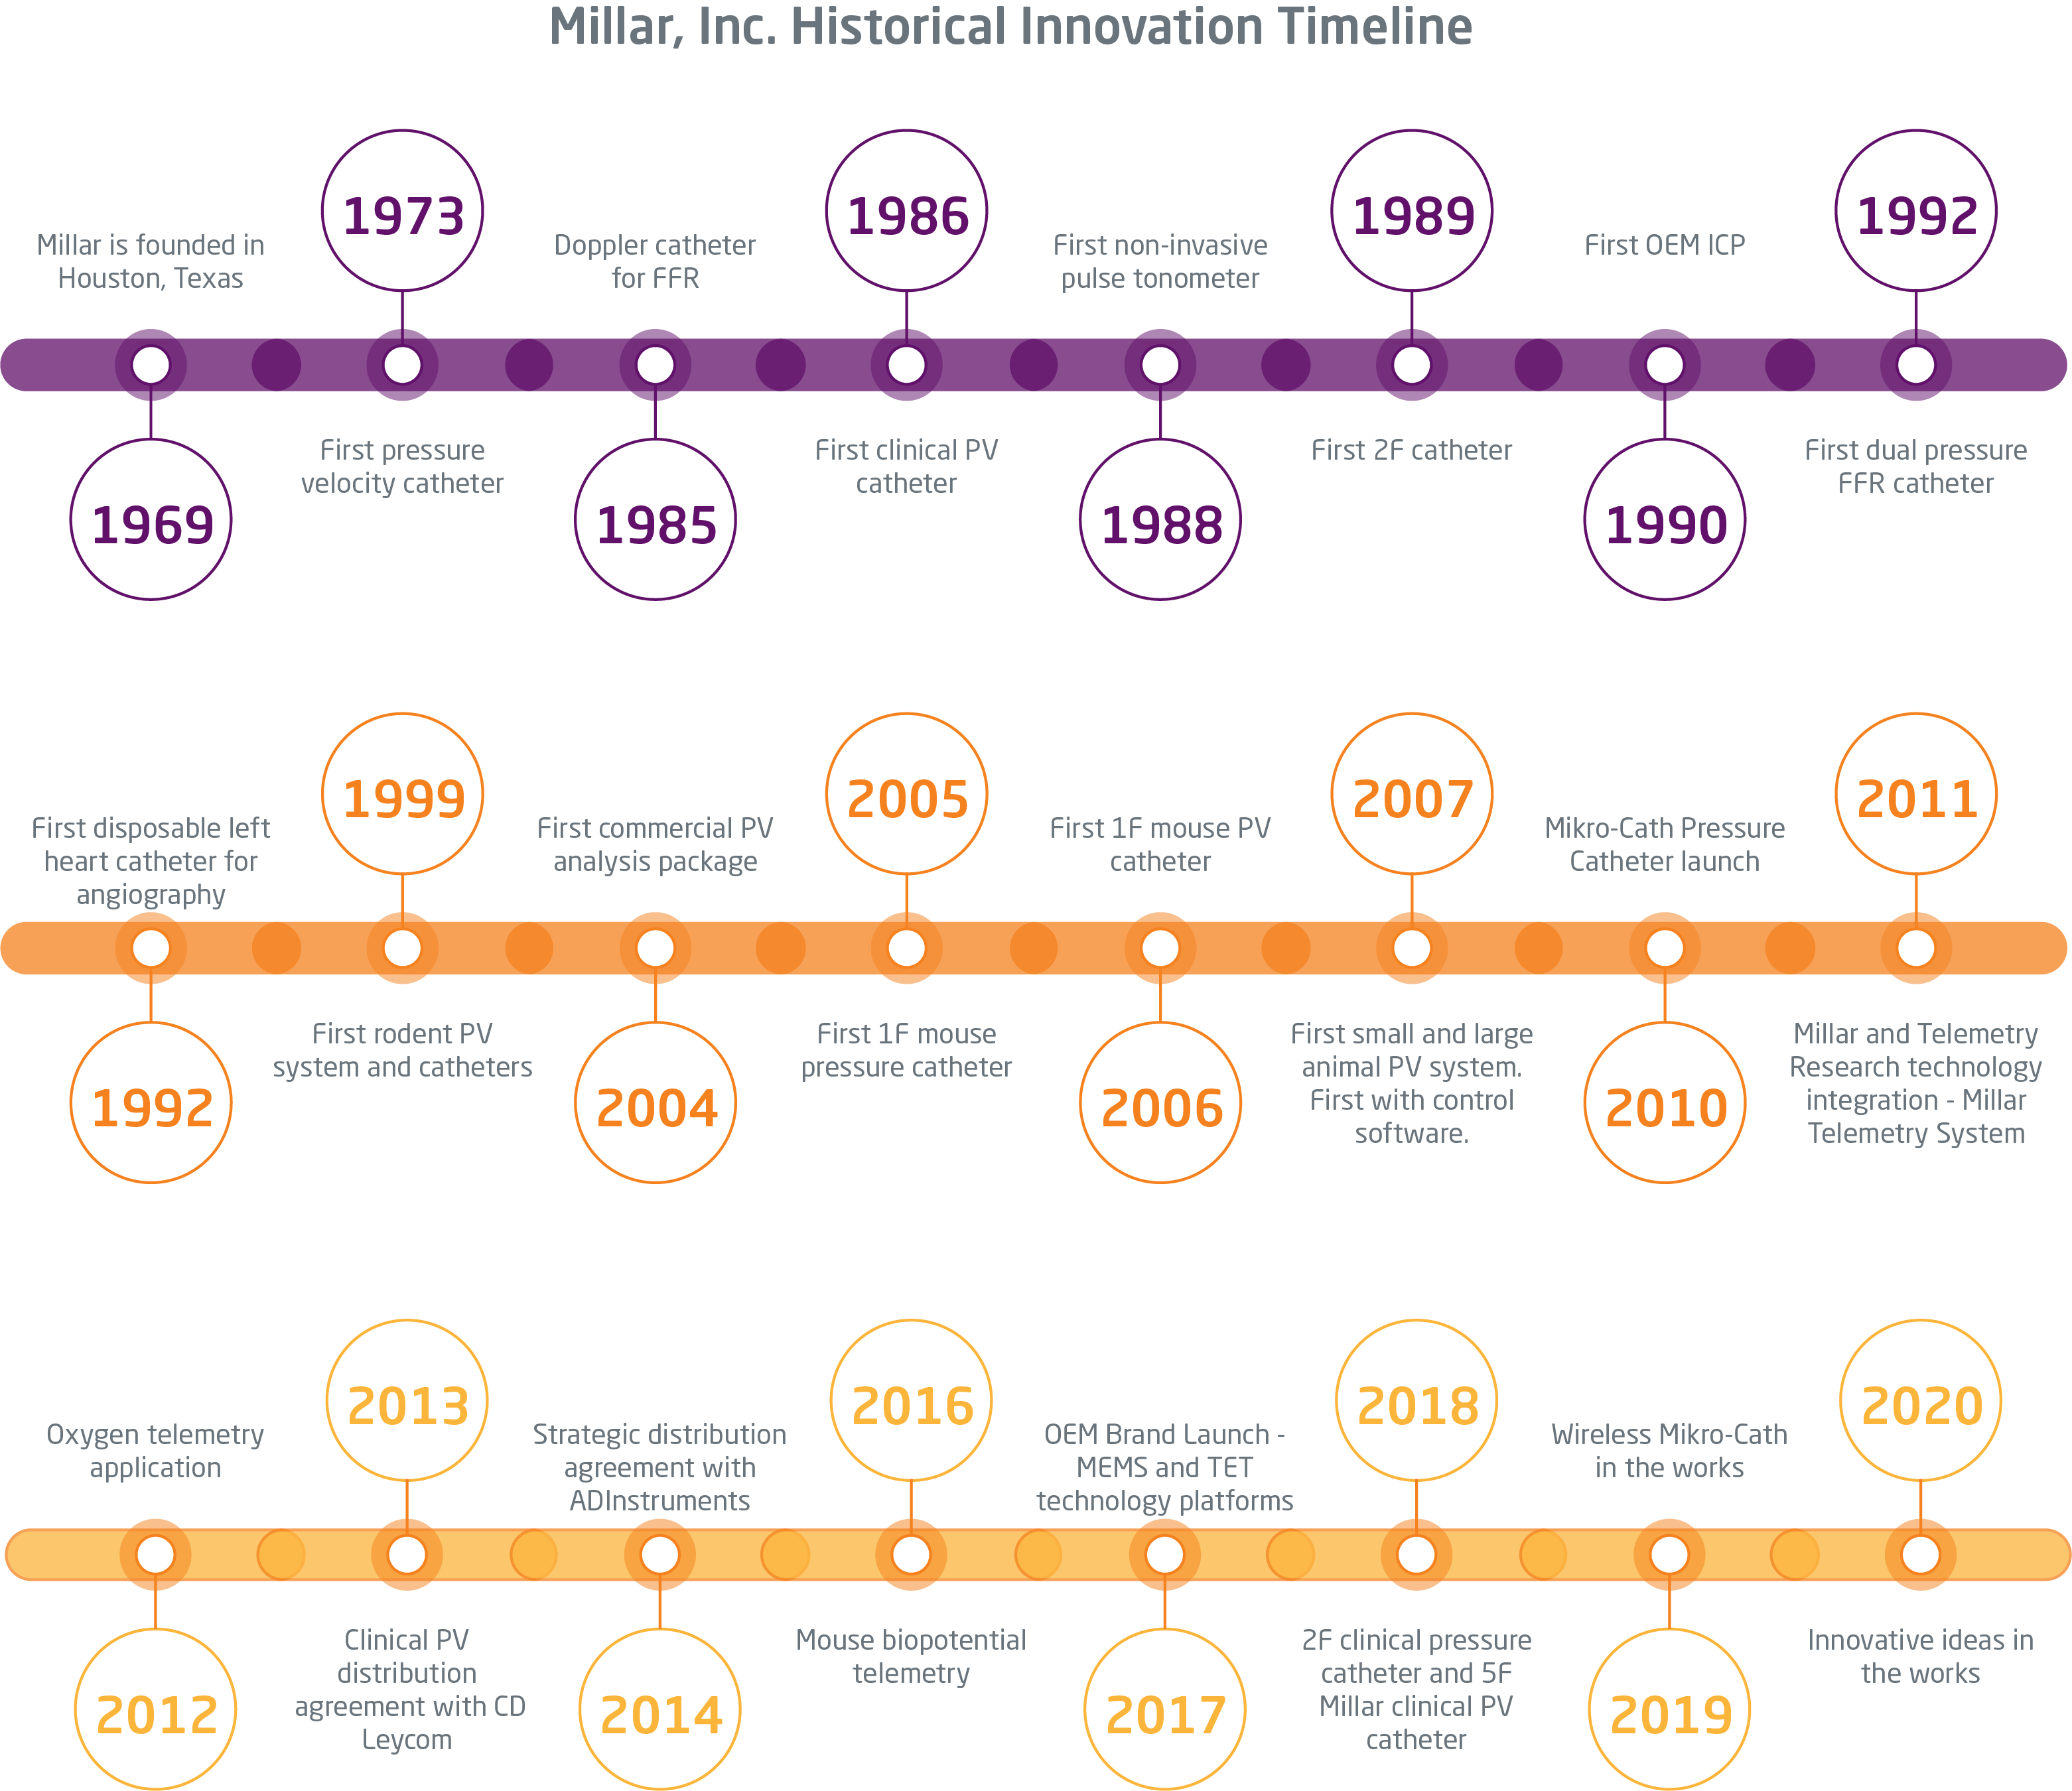 Timeline of Millar innovation